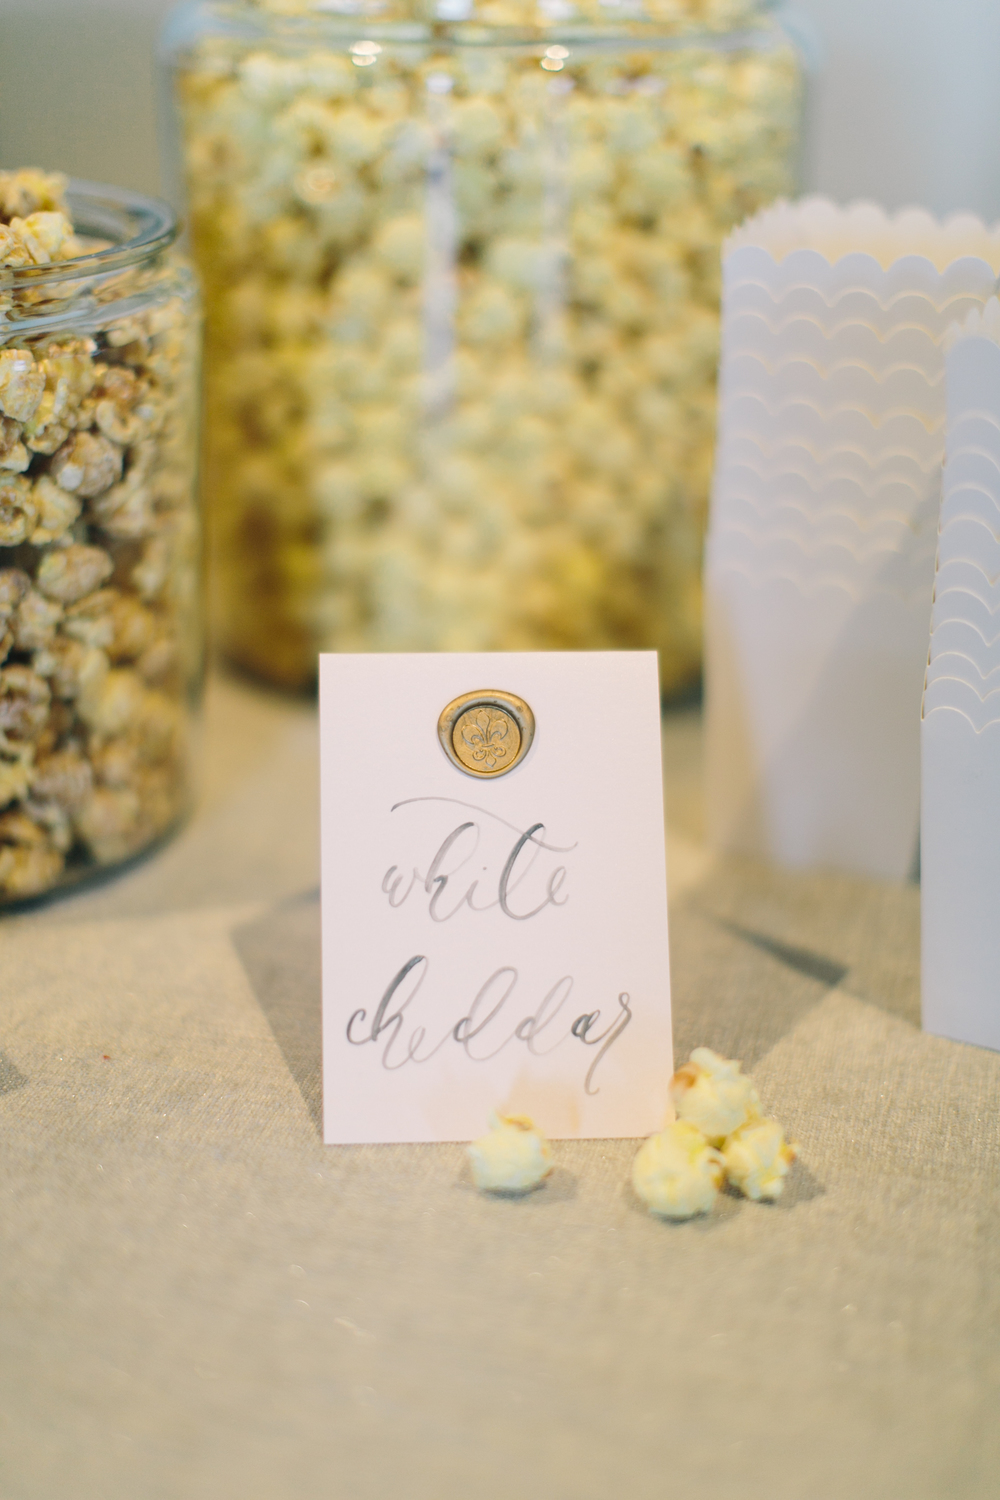 Snack bar-snack station-popcorn bar-food styling-food inspiration-DIY snack bar-white cheddar popcorn-labels-calligraphy-food photography-